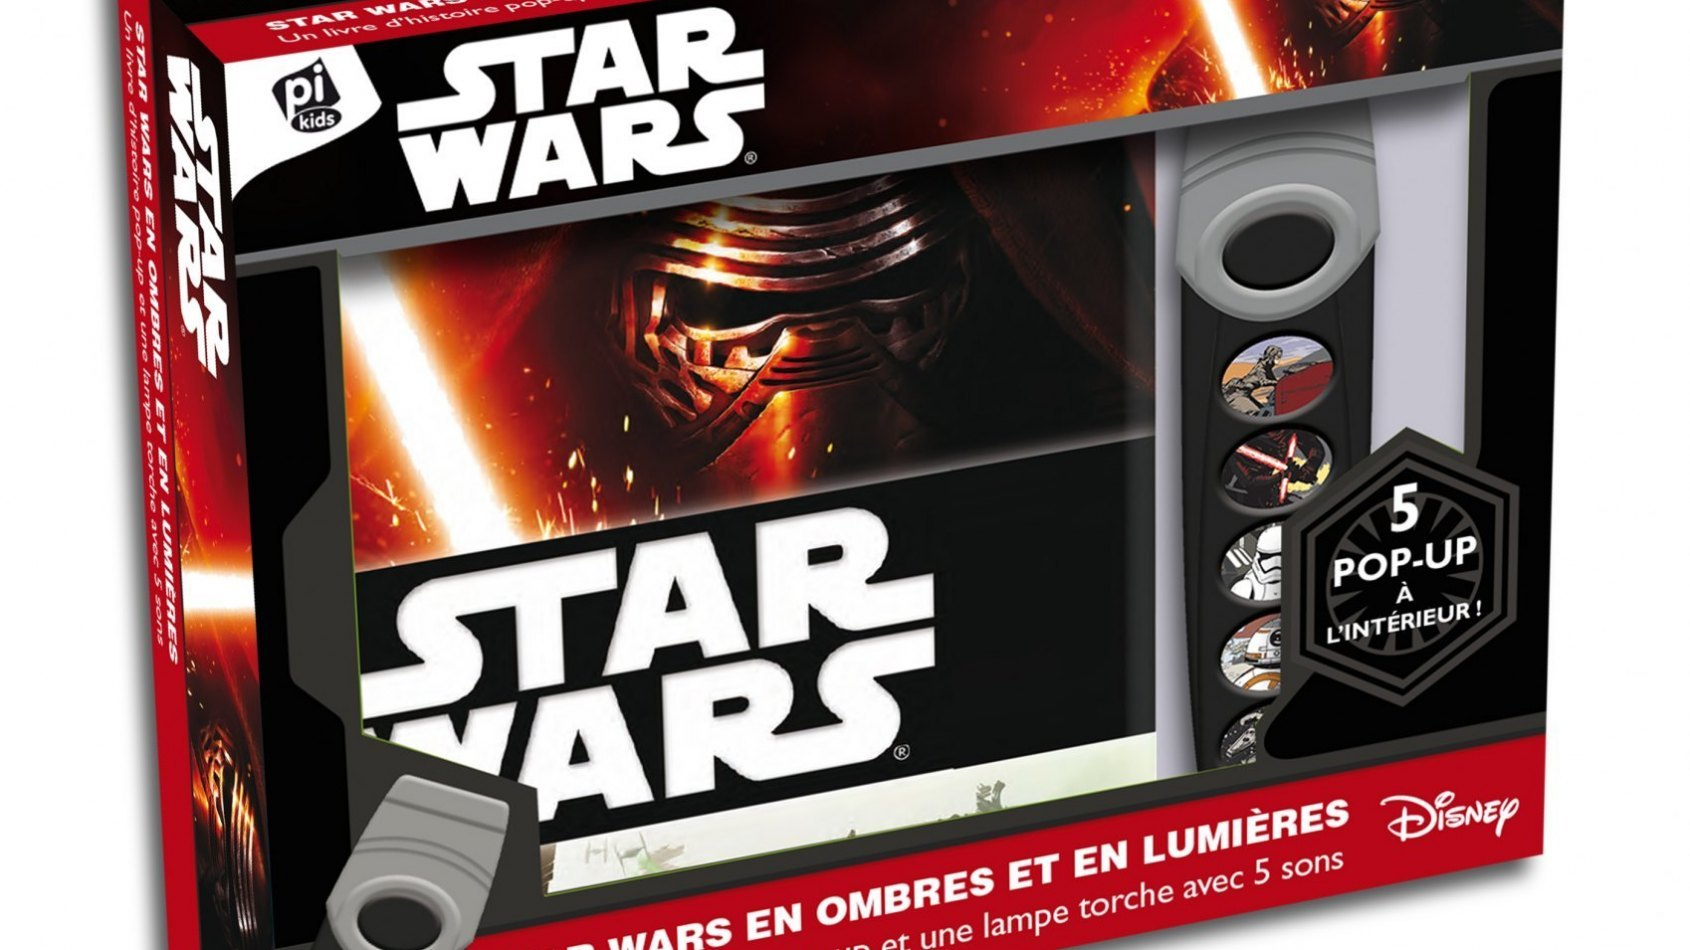 Review : Star Wars en Ombres et Lumières